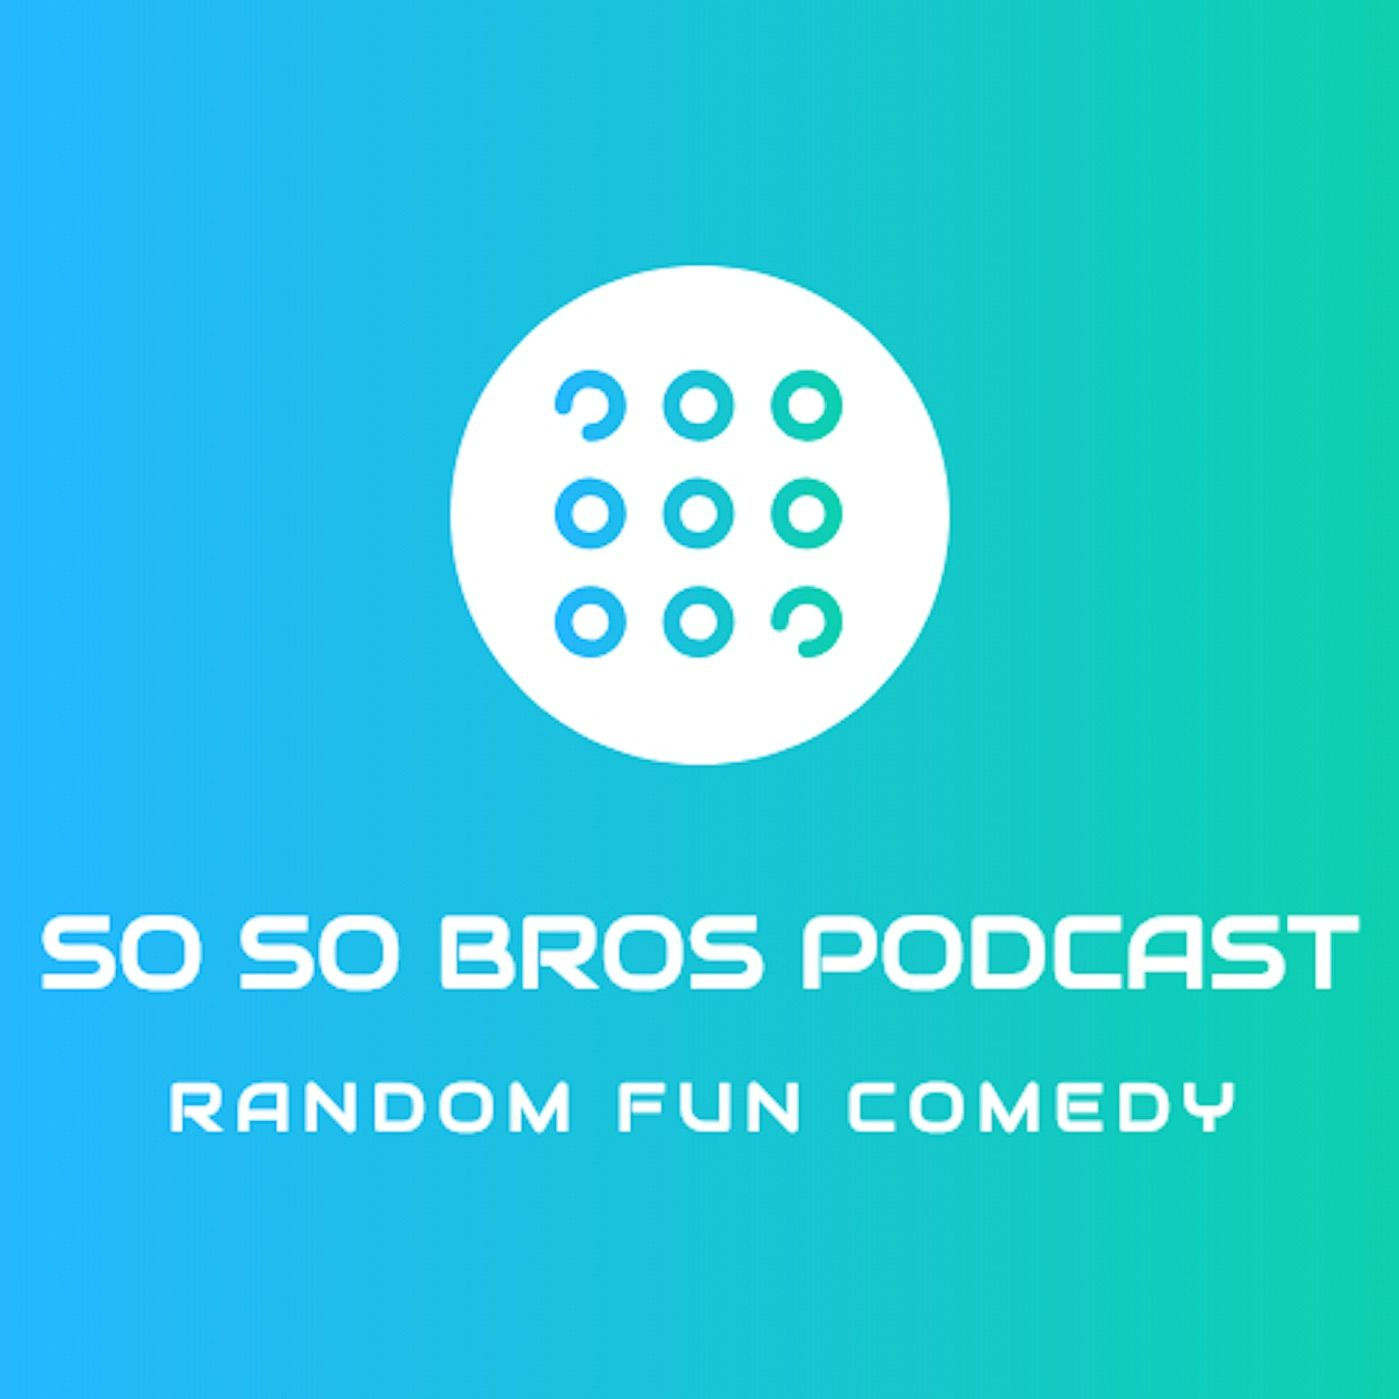 SoSo Bros Podcast 00 - The lost episode